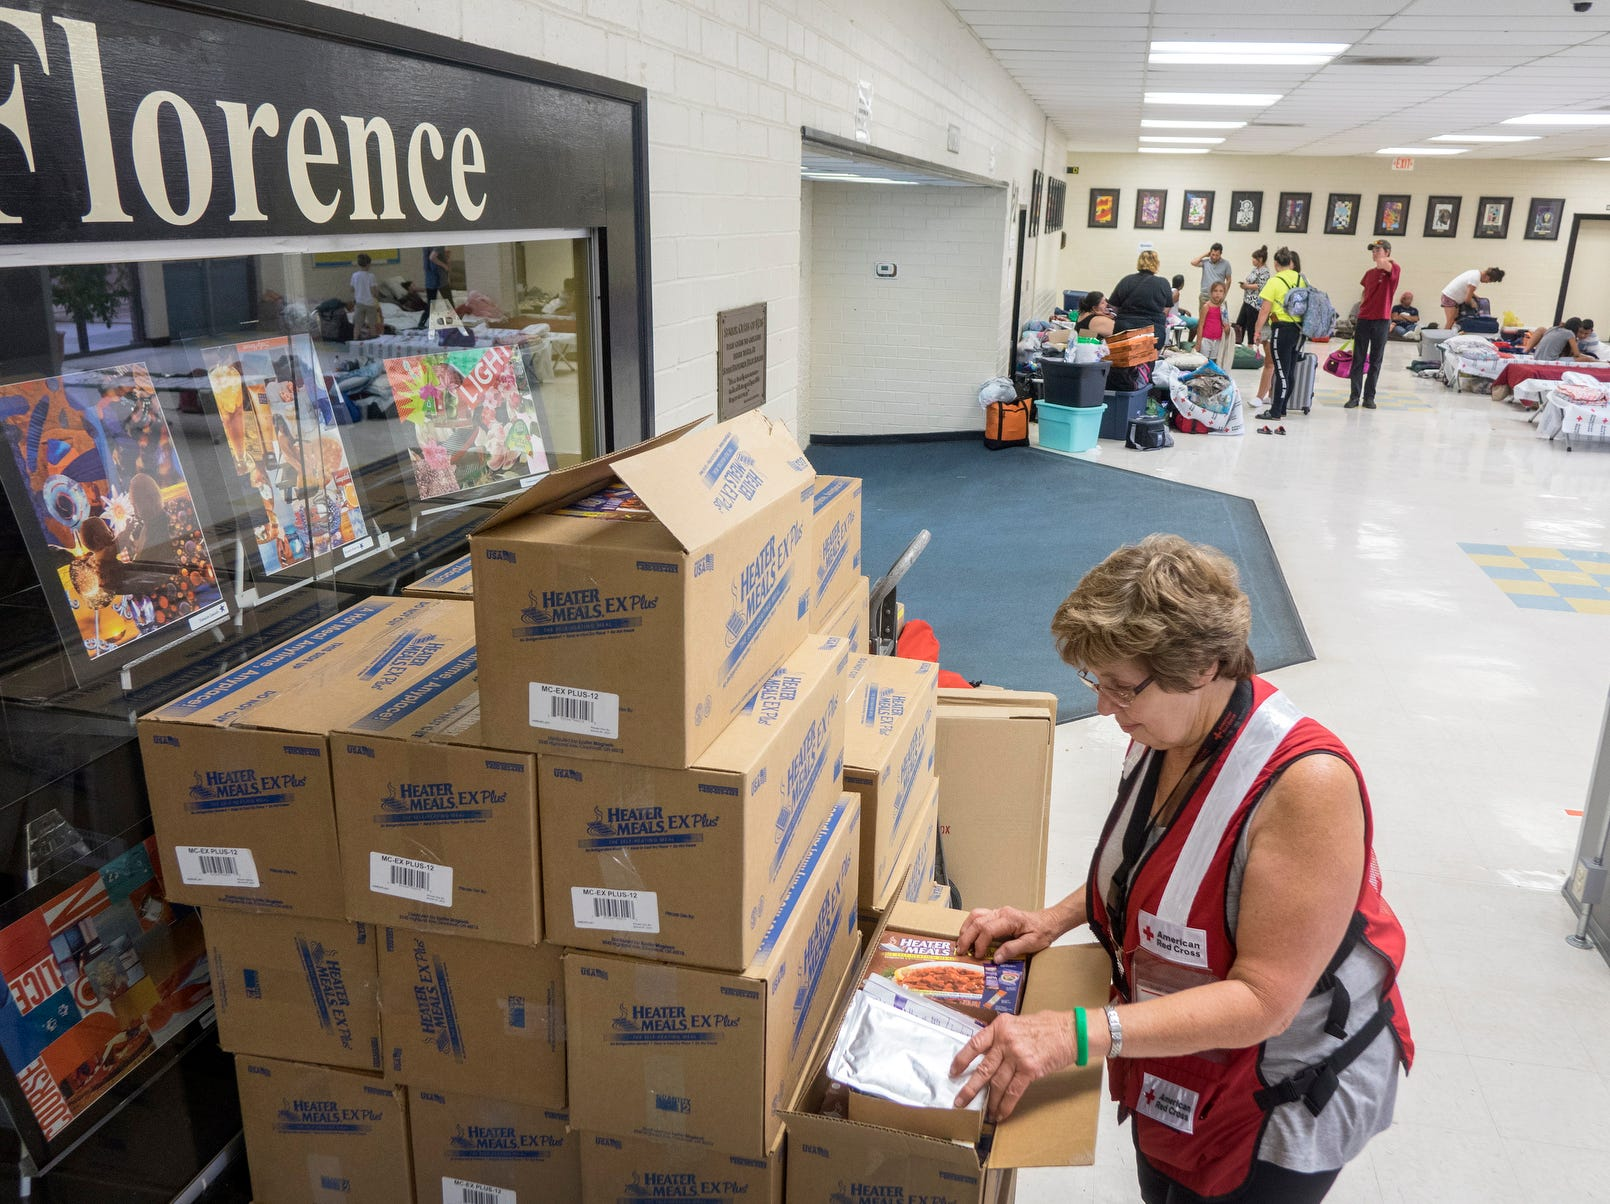 Dori Baumwart, from the American Red Cross Disaster Services, checks the emergency supplies at the hurricane shelter located in South Florence high school, Florence, S.C., Friday.